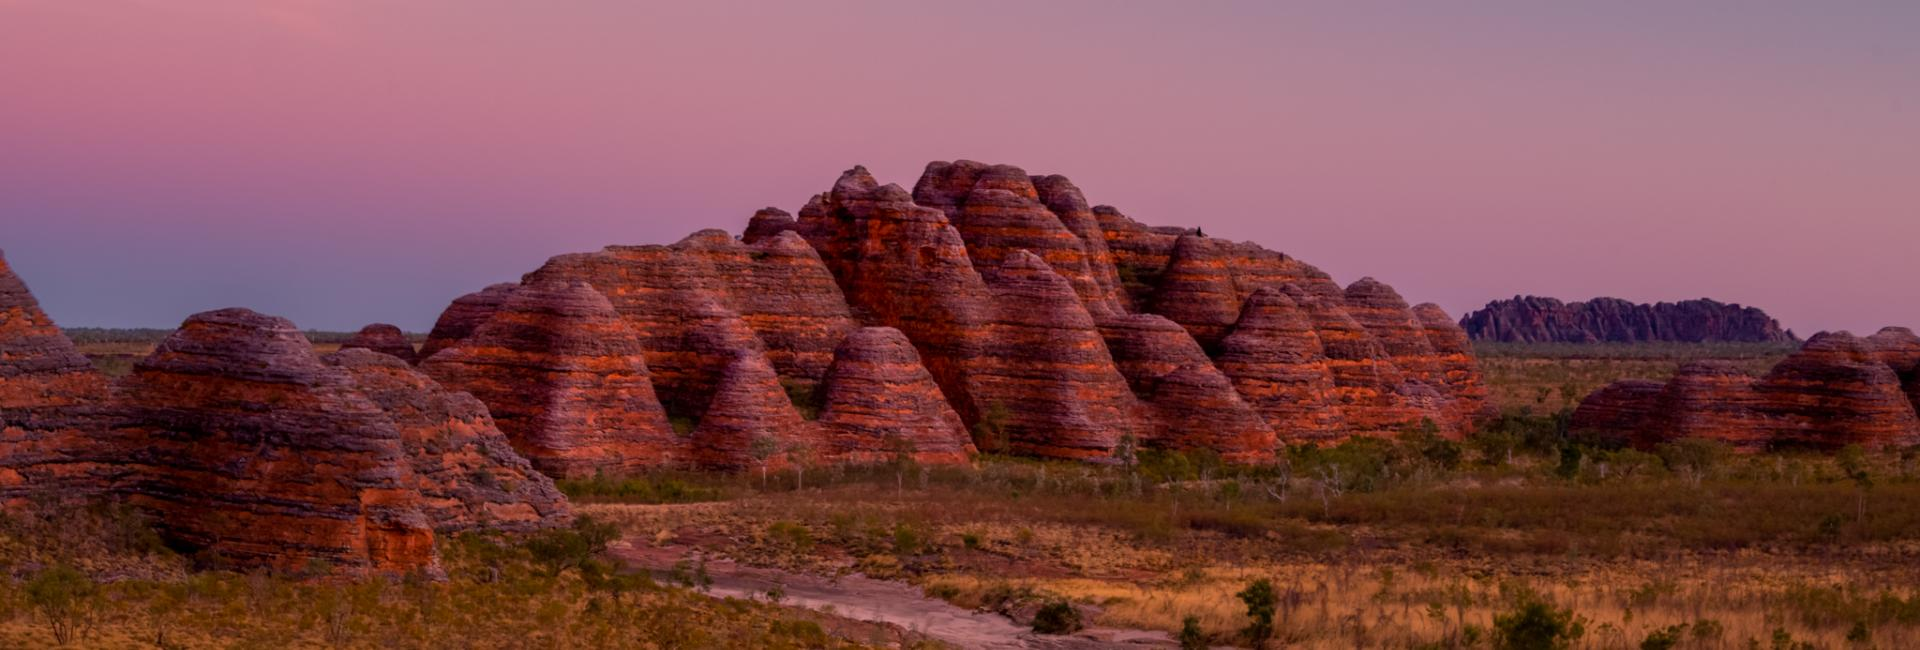 Punululu National Park (the Bungle Bungle) at sunset. Image: CJ Maddock/Australia's North West